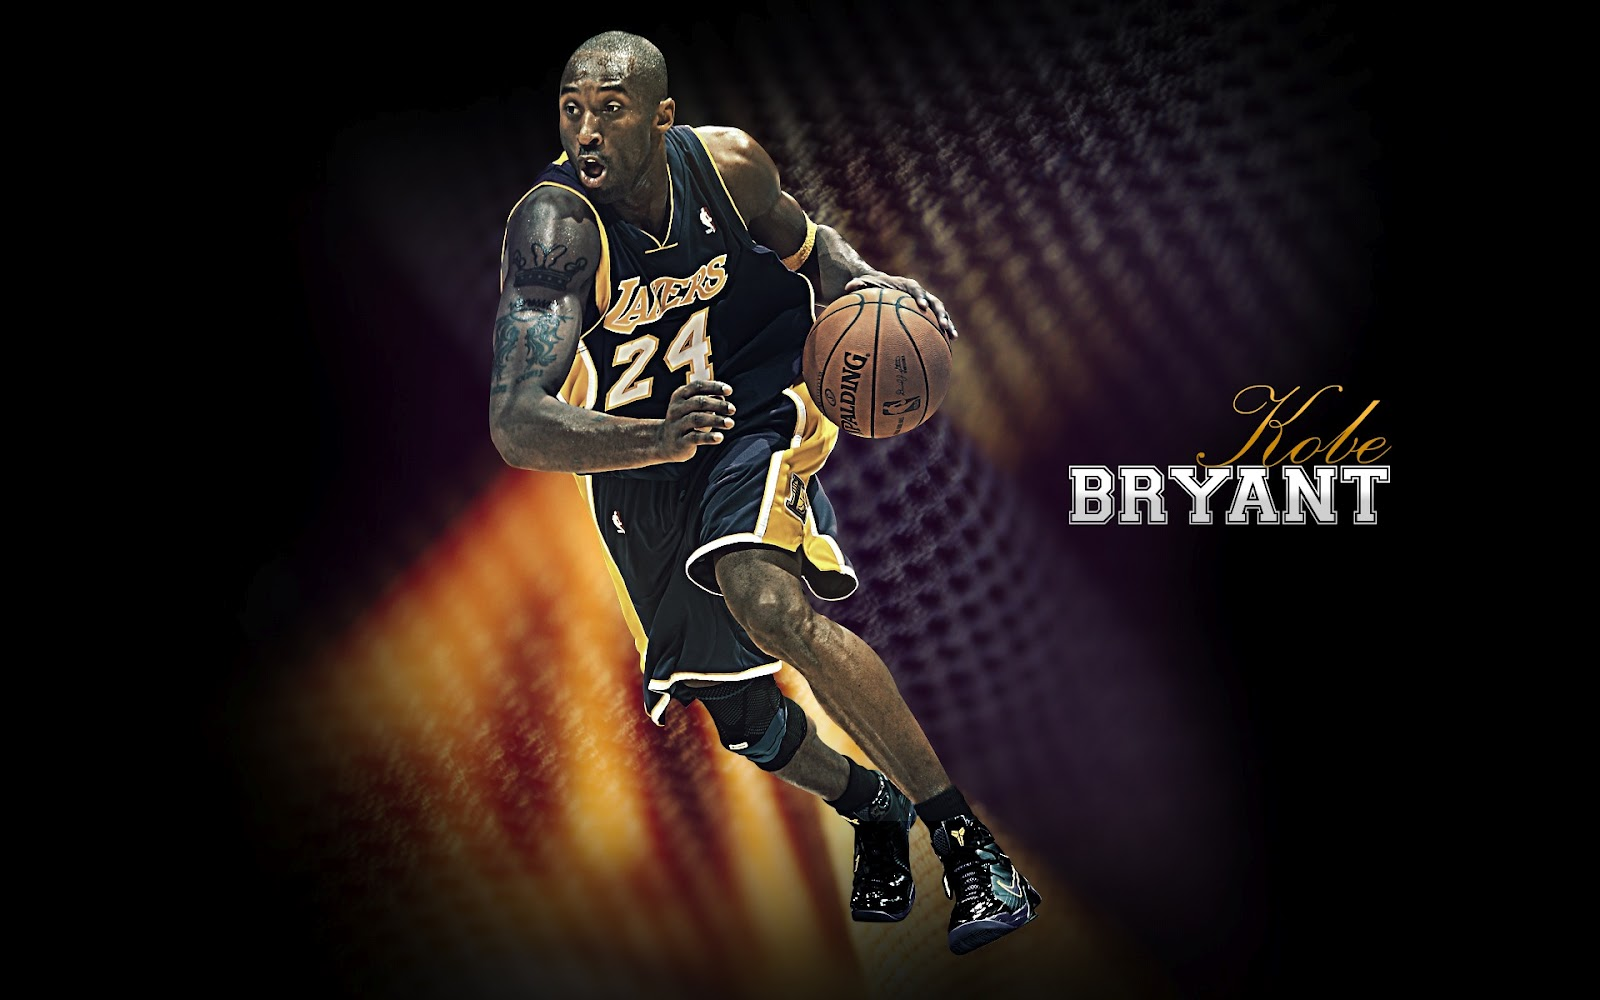 kobe bryant new hd wallpapers 2013